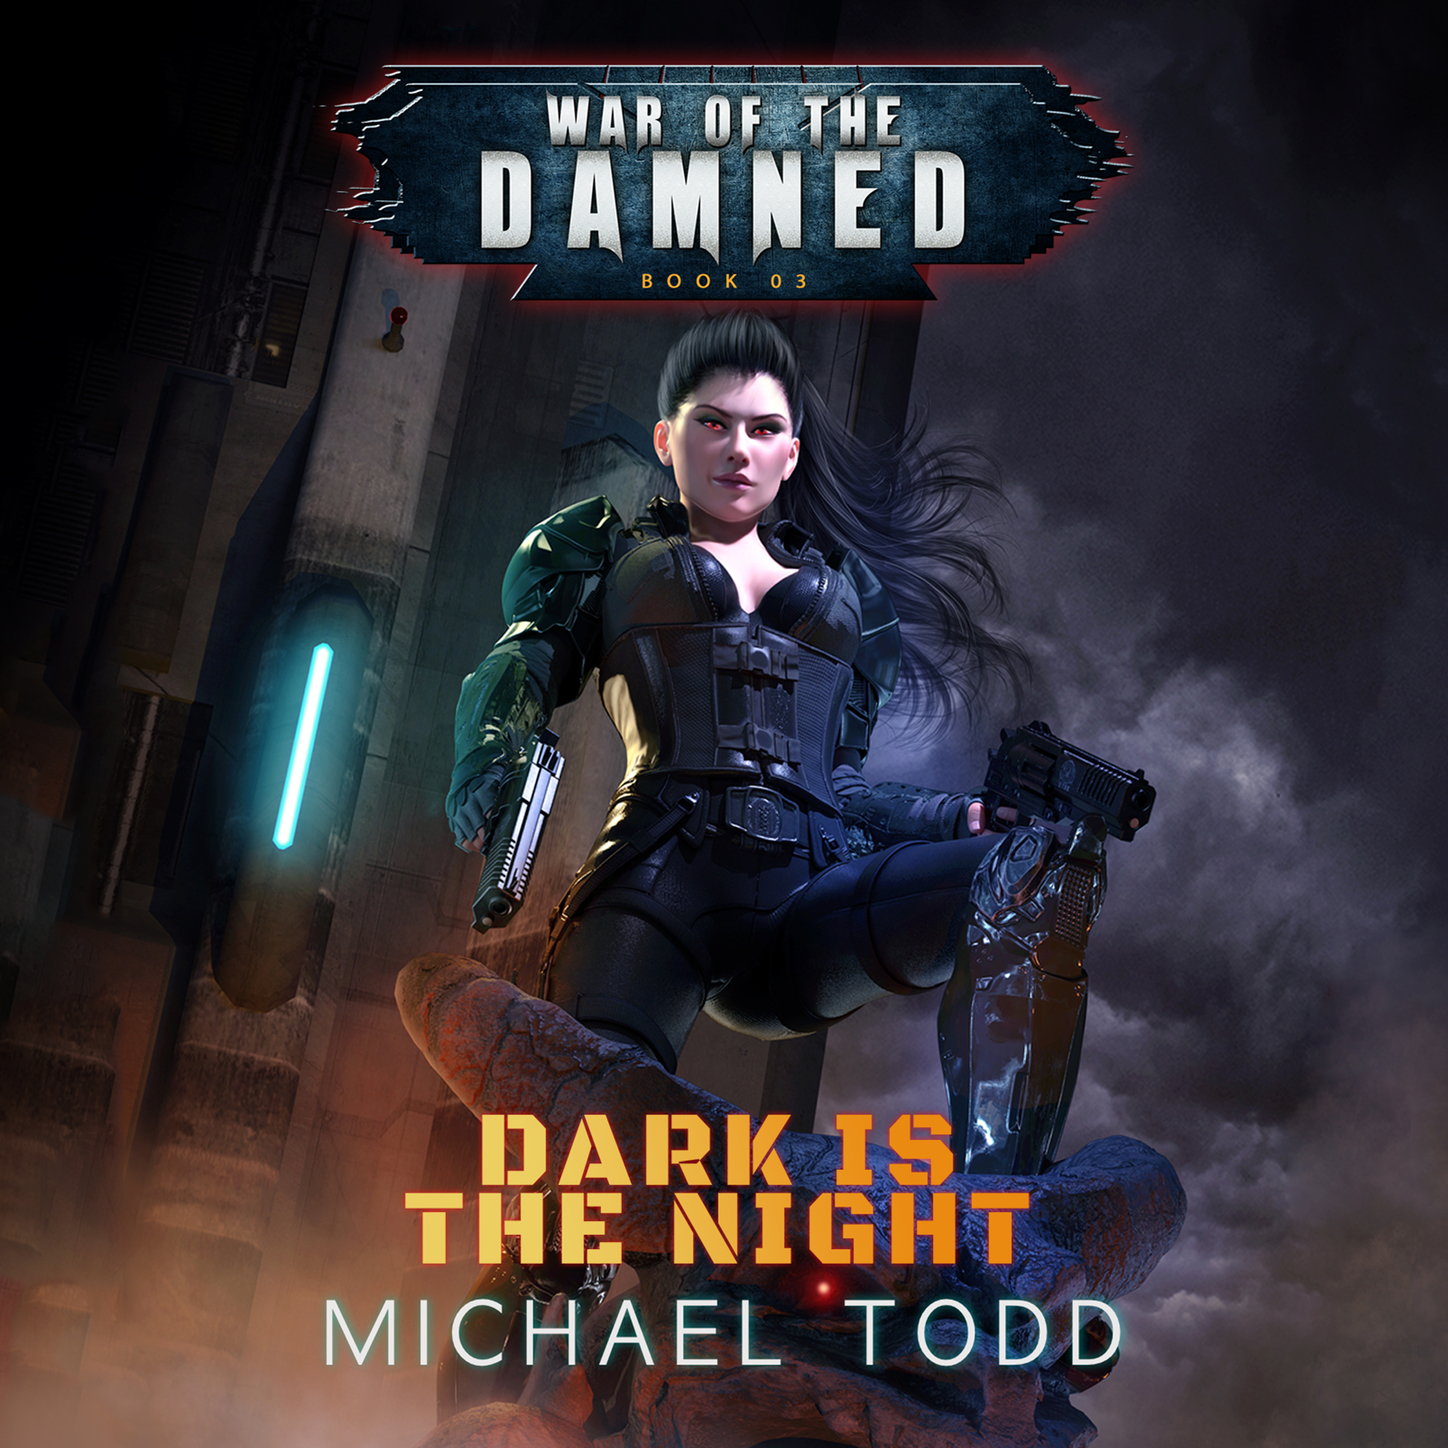 цена на Laurie Starkey S. Dark is the Night - War of the Damned - A Supernatural Action Adventure Opera, Book 3 (Unabridged)